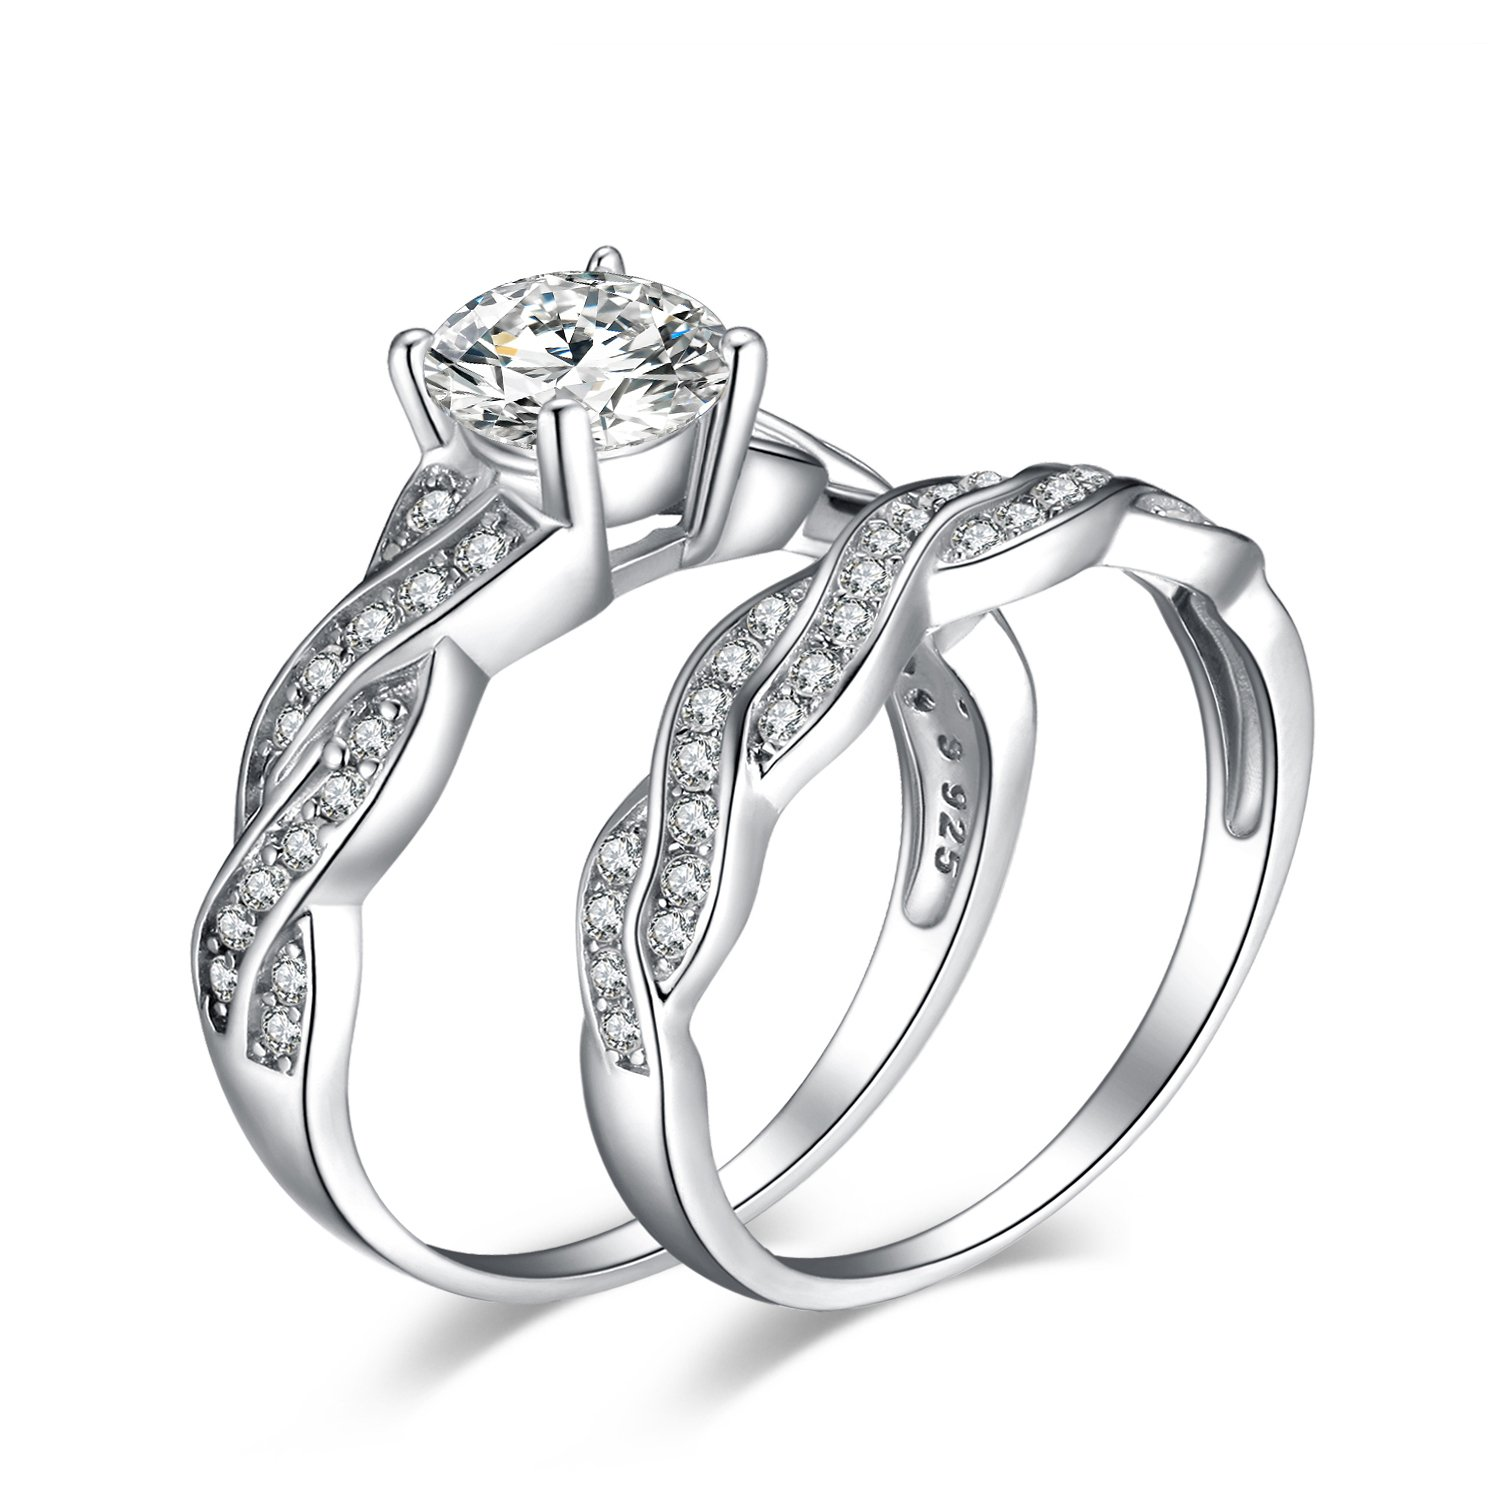 JewelryPalace Wedding Rings Engagement Rings For Women Anniversary Promise Ring Bridal Sets 925 Sterling Silver 1.5ct X Infinity White Cubic Zirconia CZ Ring Size 4-11